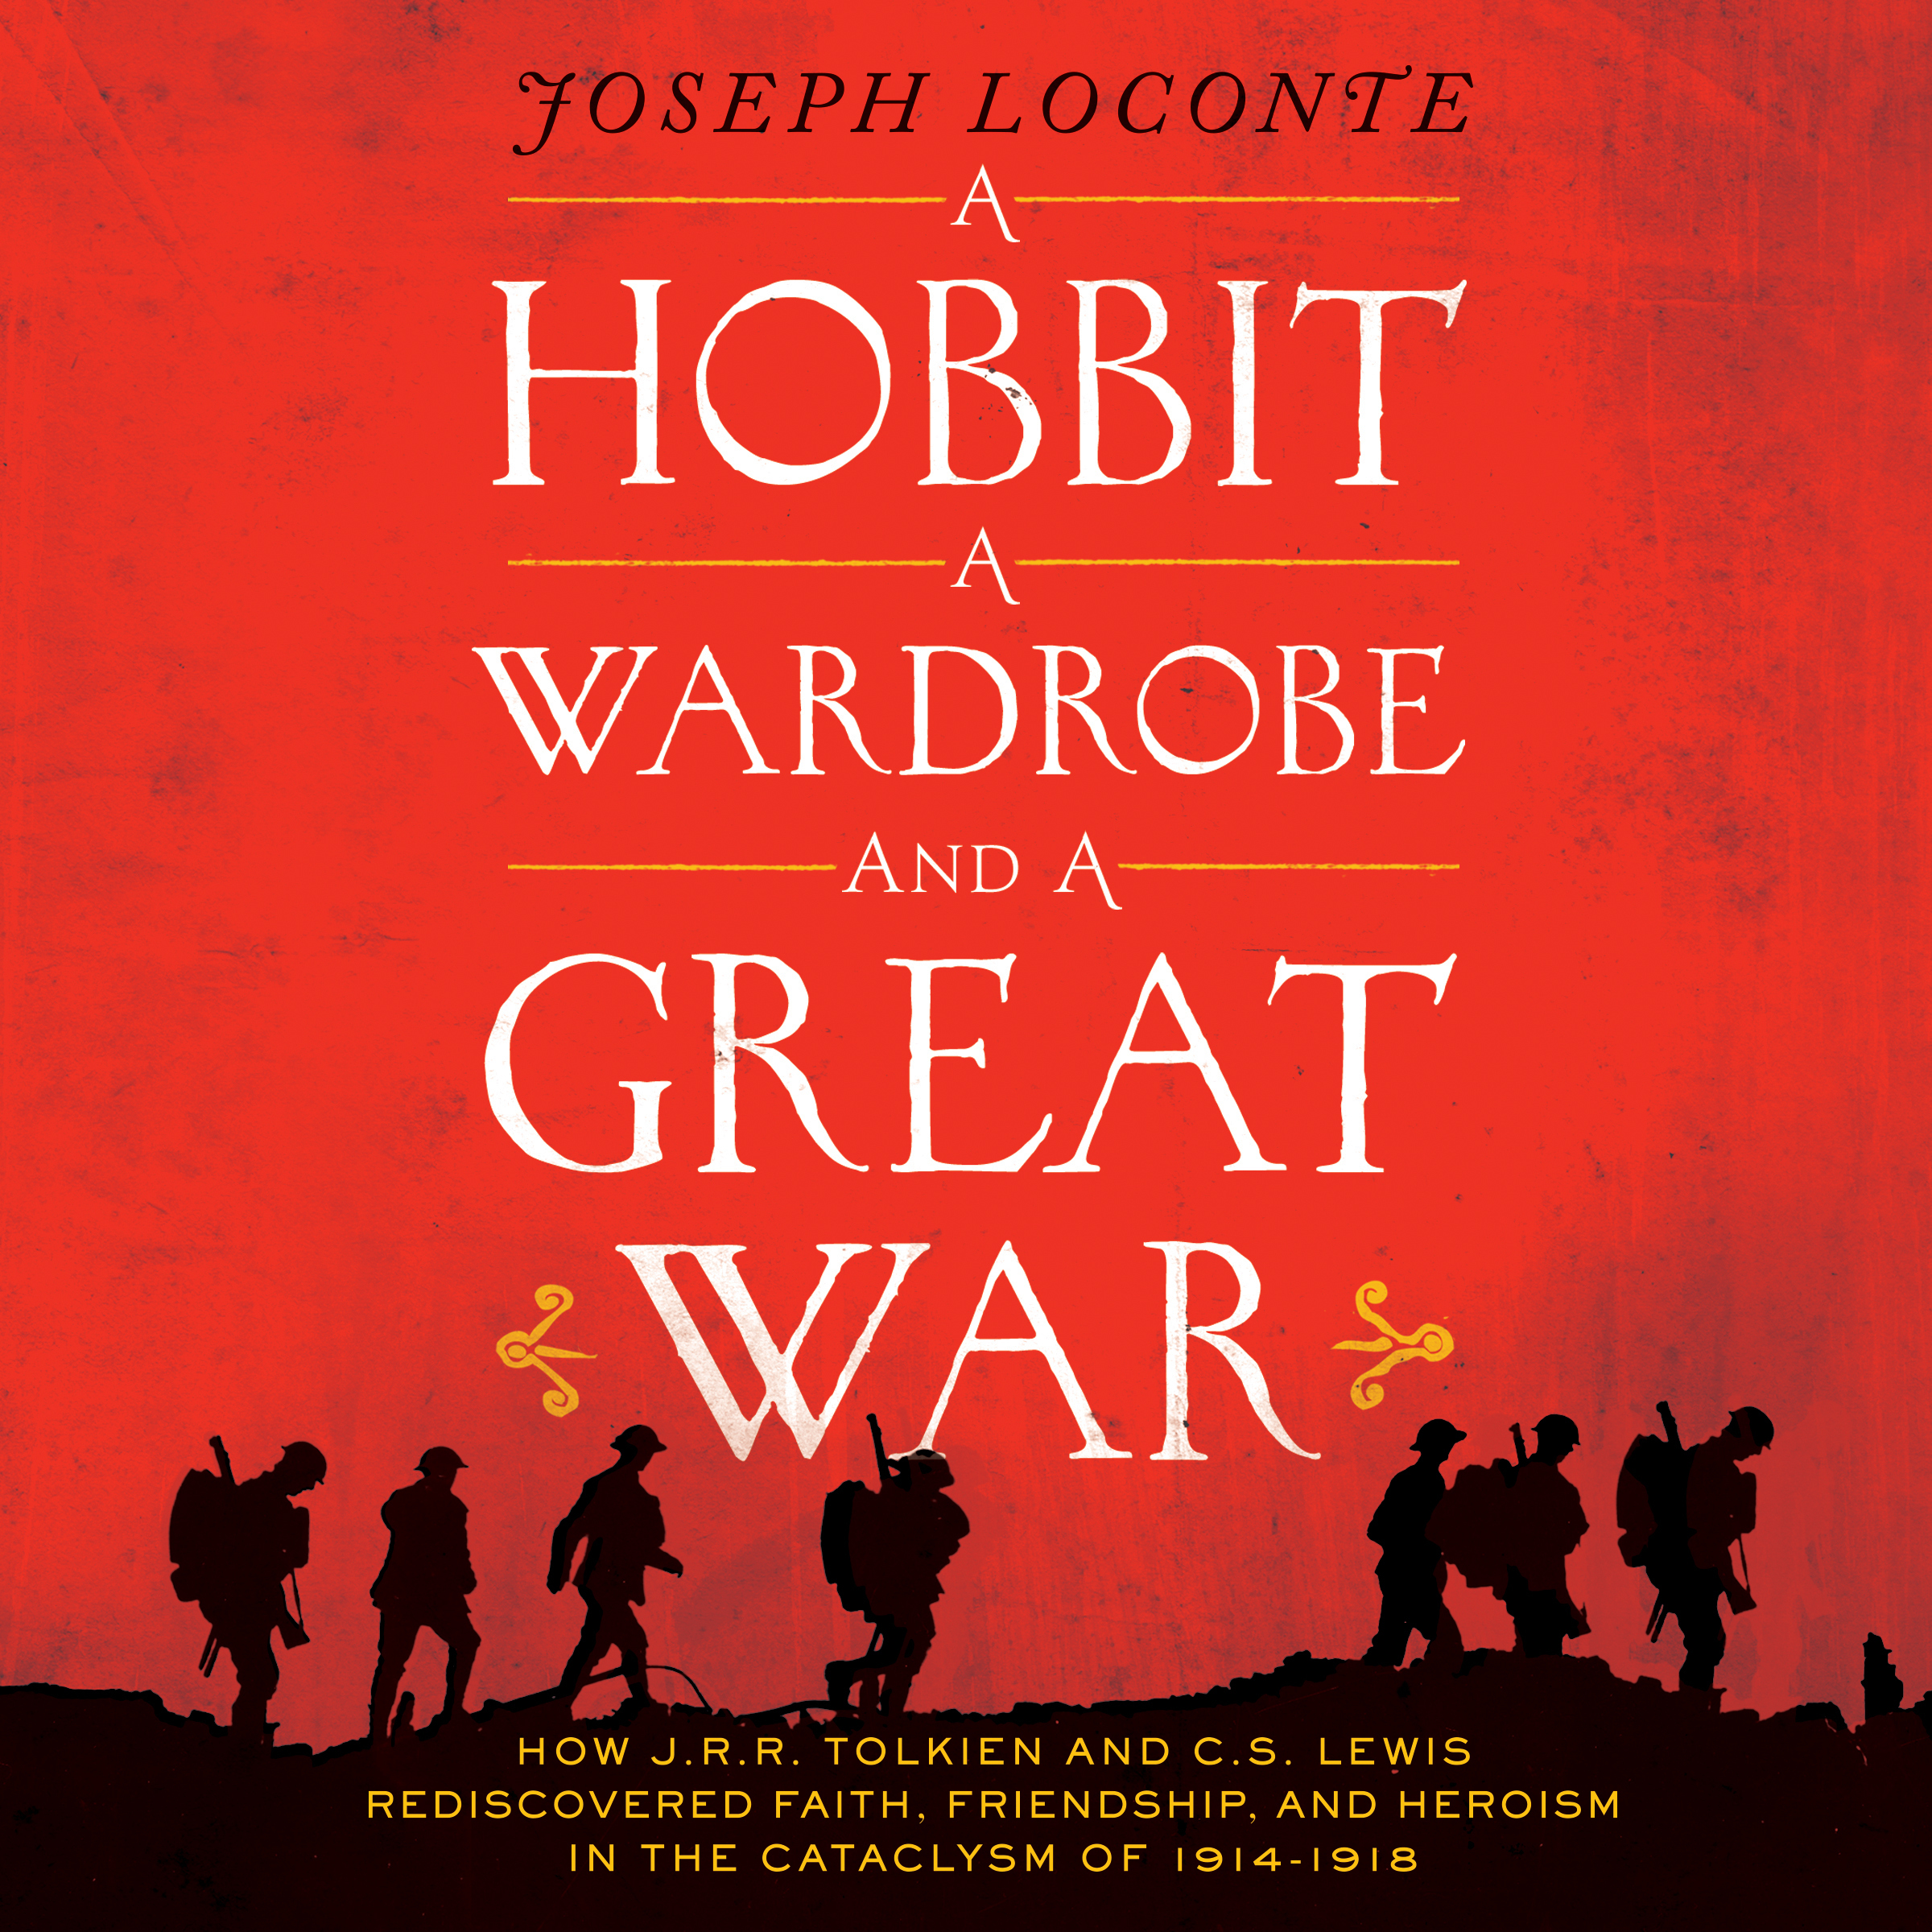 Printable A Hobbit, A Wardrobe and a Great War: How J.R.R. Tolkien and C.S. Lewis Rediscovered Faith, Friendship, and Heroism in the Cataclysm of 1914-1918 Audiobook Cover Art